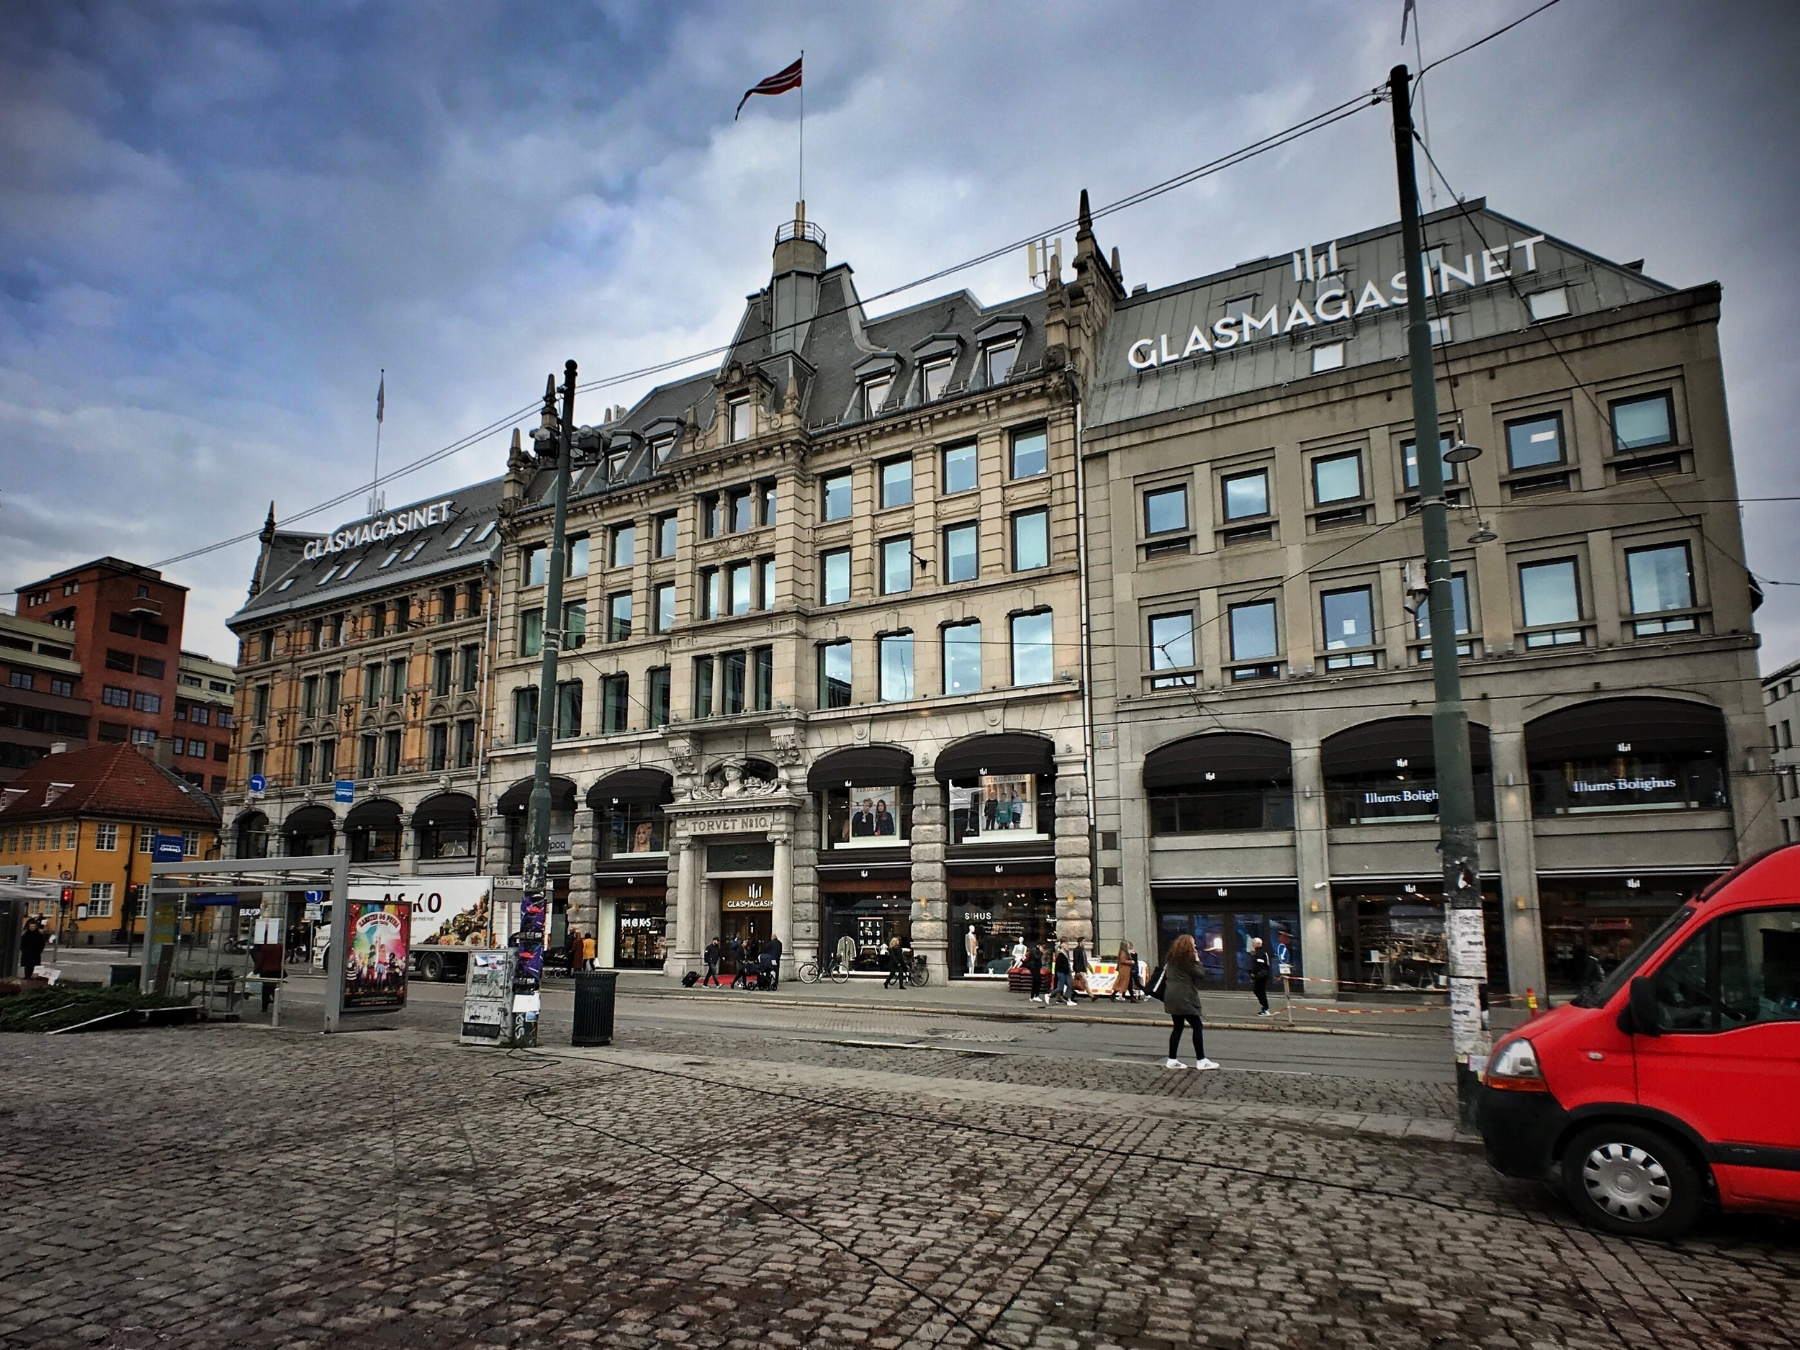 GlasMagasinet was founded in 1739 and is the Norway's oldest department store